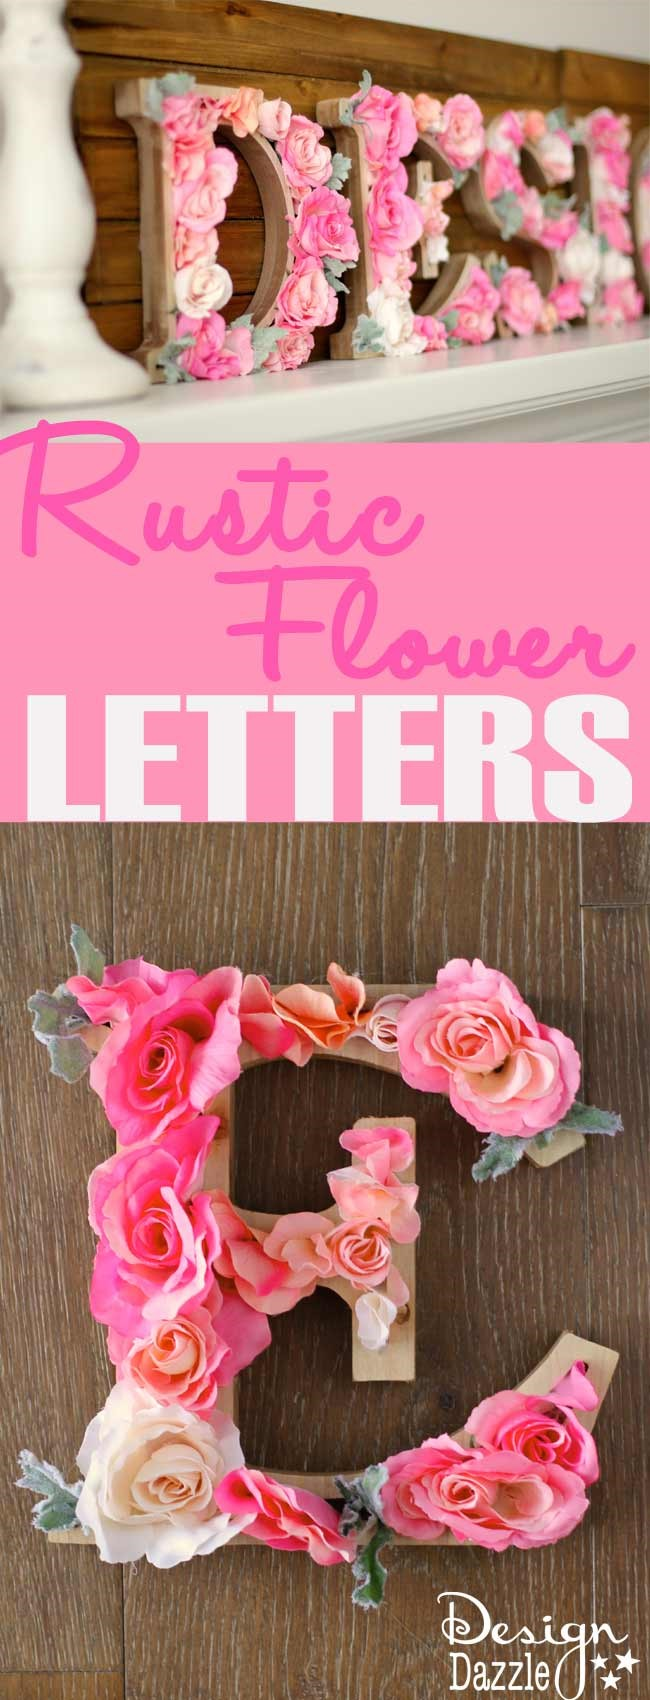 7 Letters with Flowers Simphome com